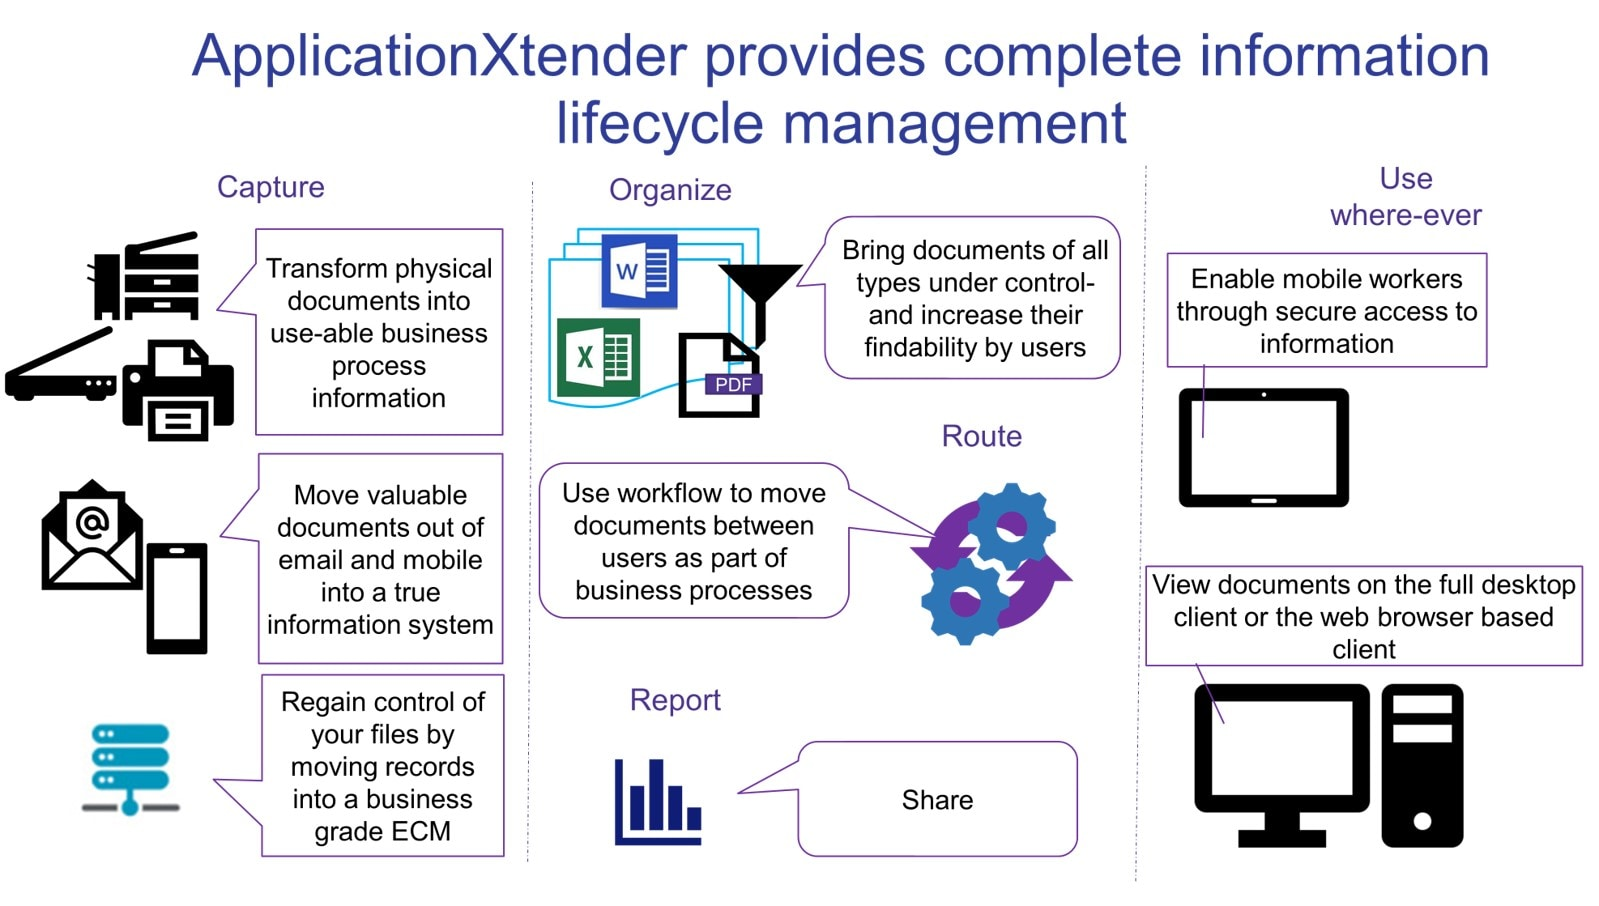 ApplicationXtender Lifecycle Management